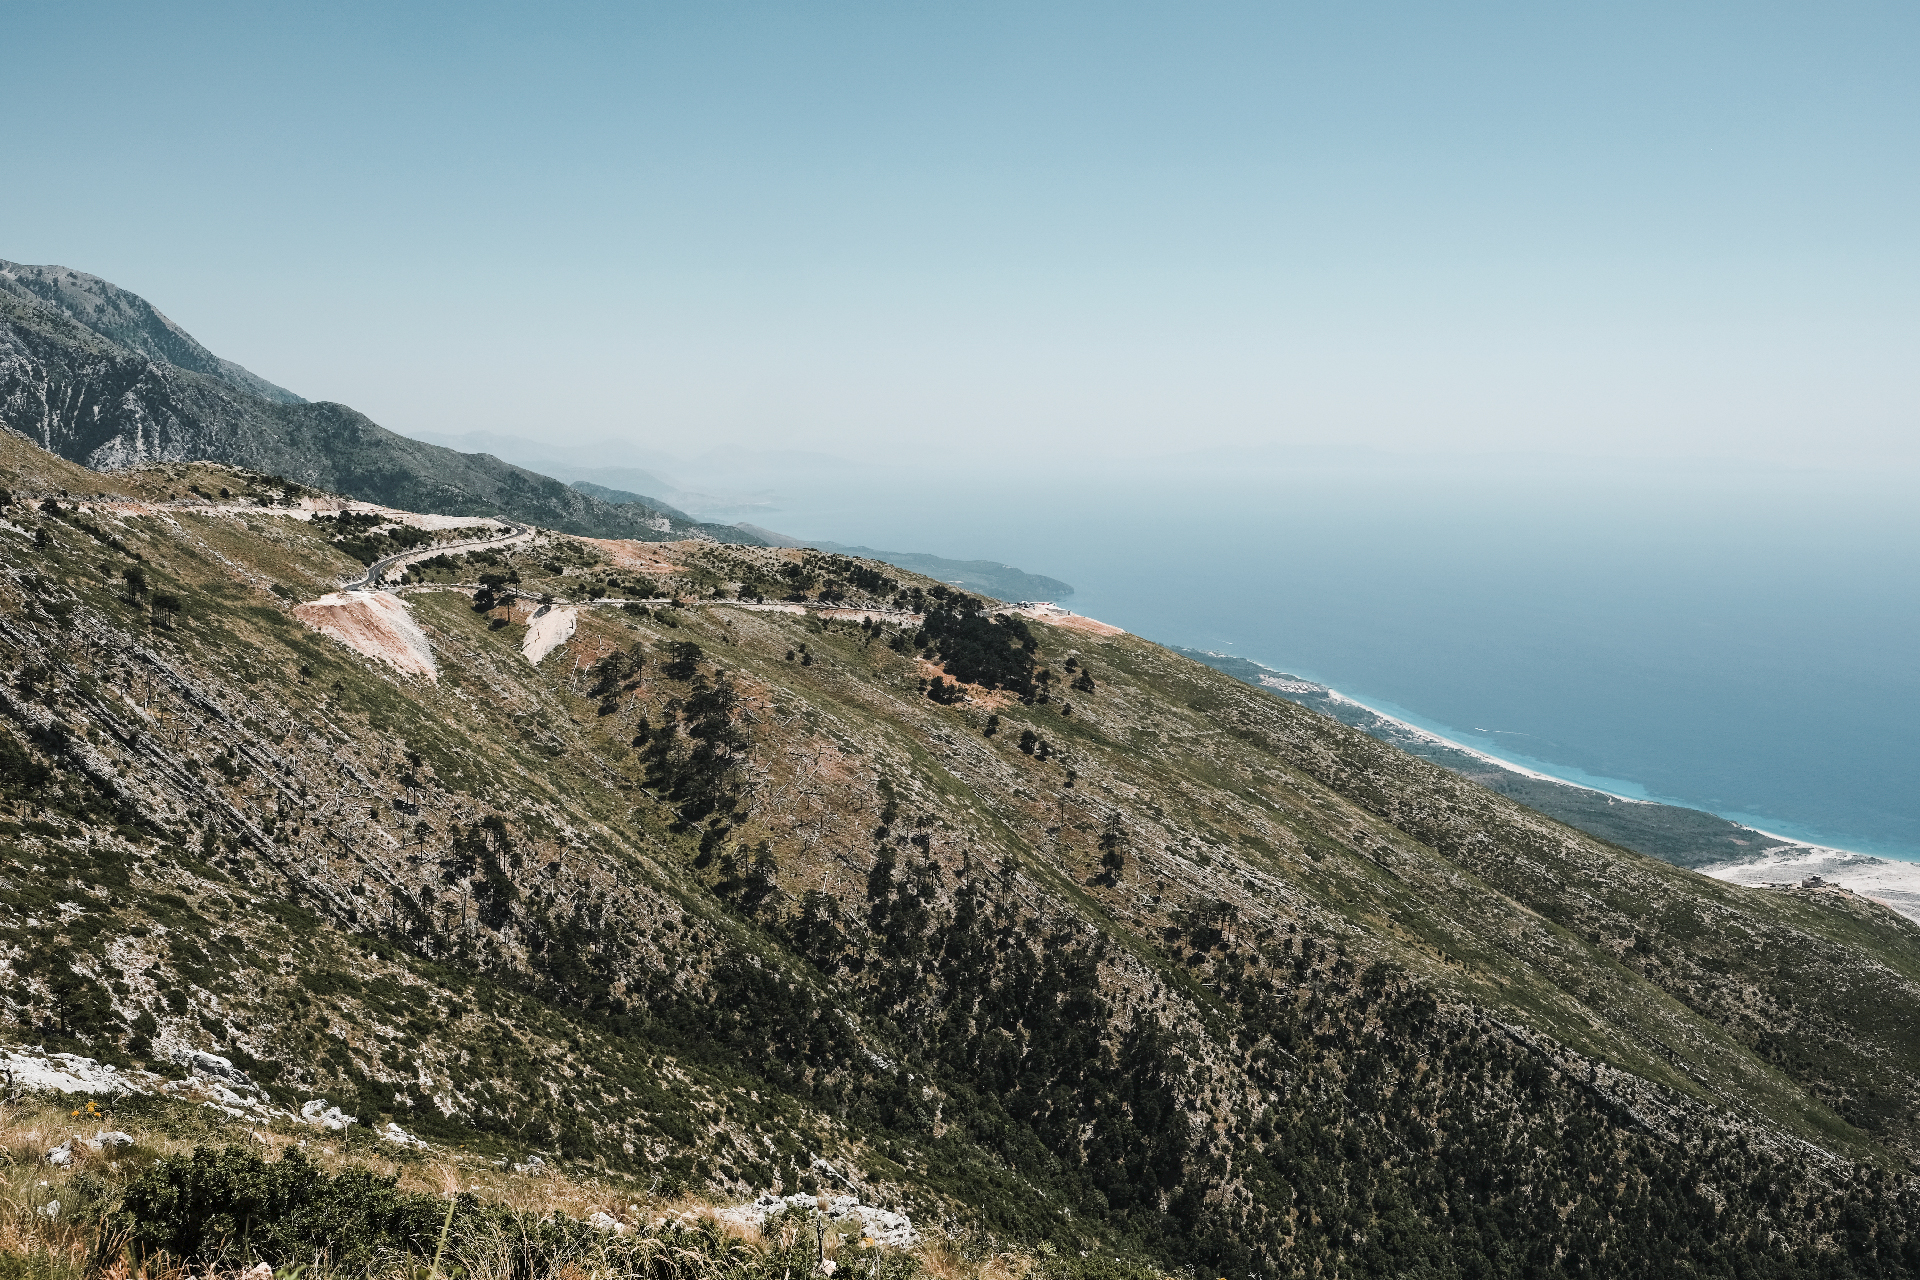 winding road going down to the coast and best beaches in the Riviera